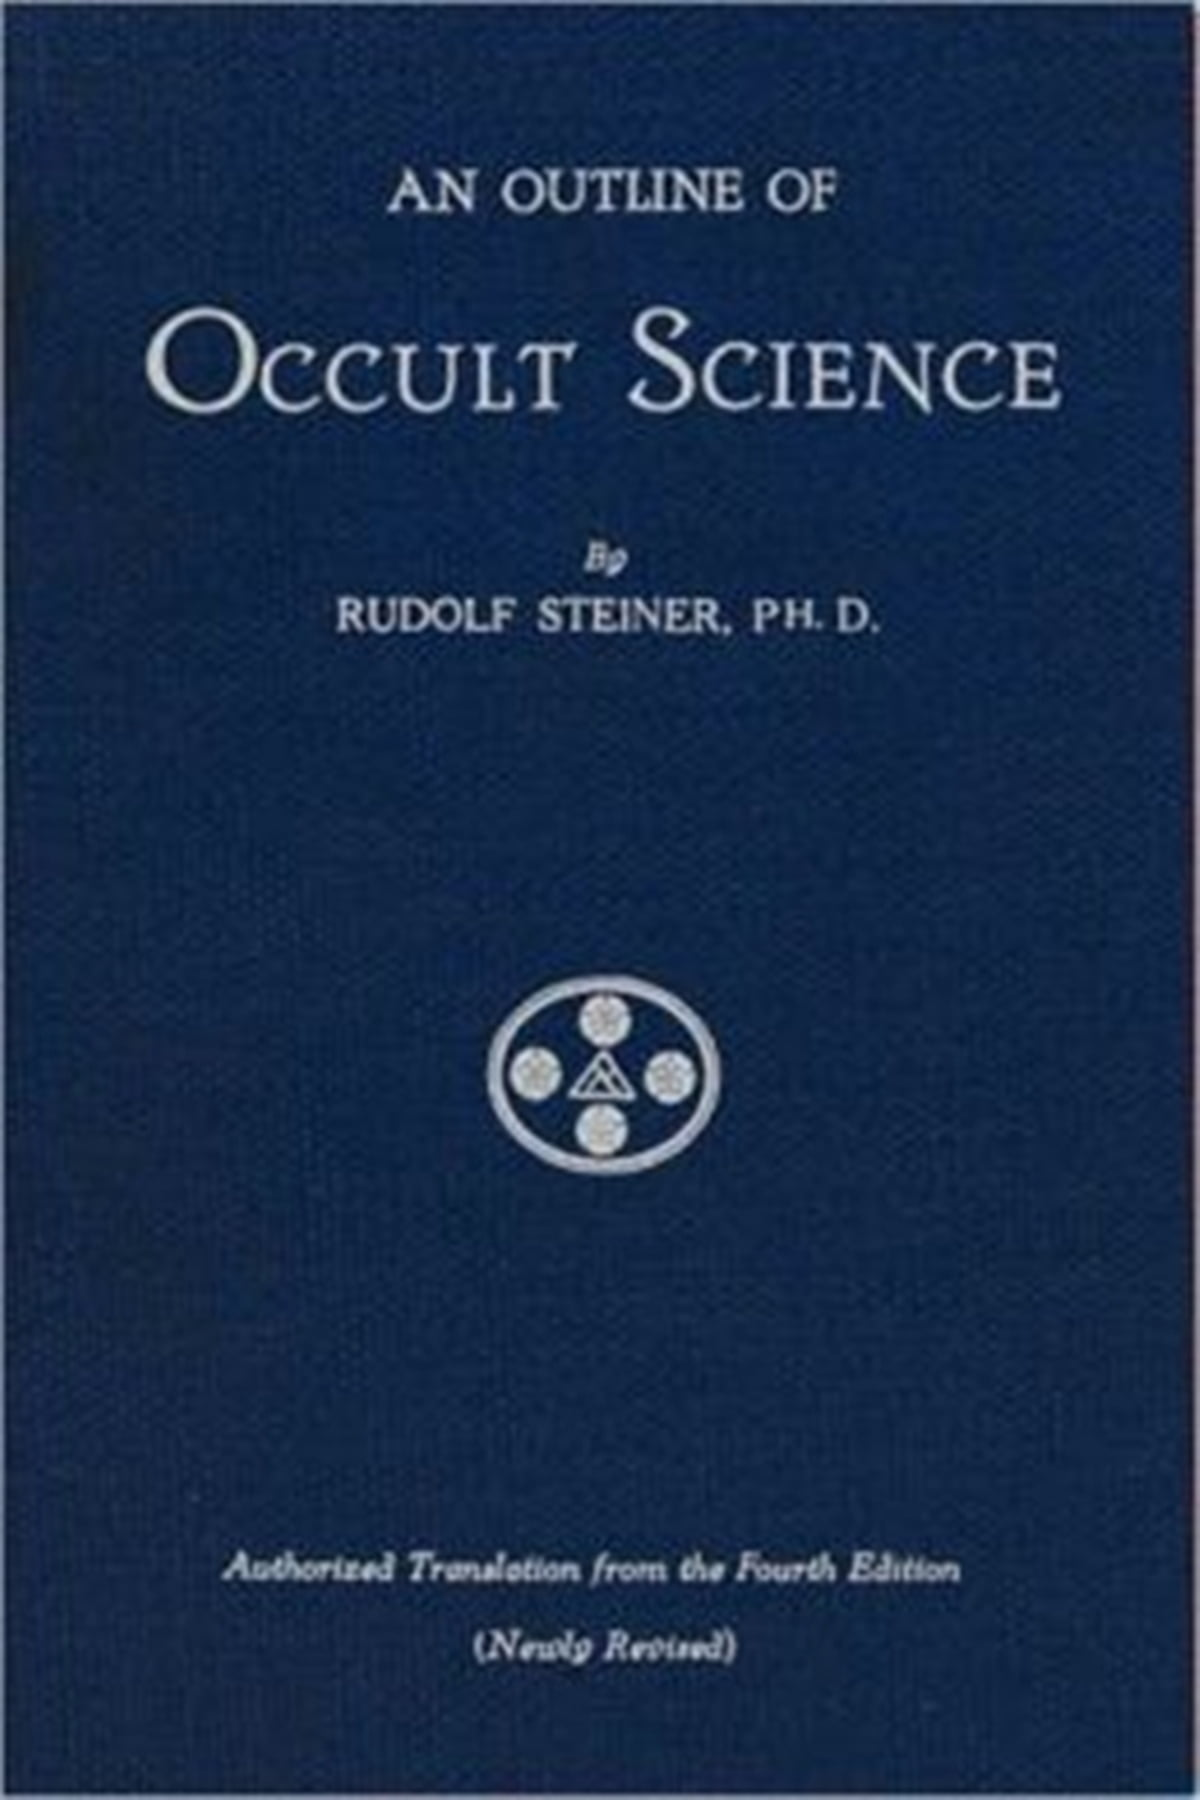 An Outline of Occult Science eBook by Rudolf Steiner - 1230000105018 |  Rakuten Kobo